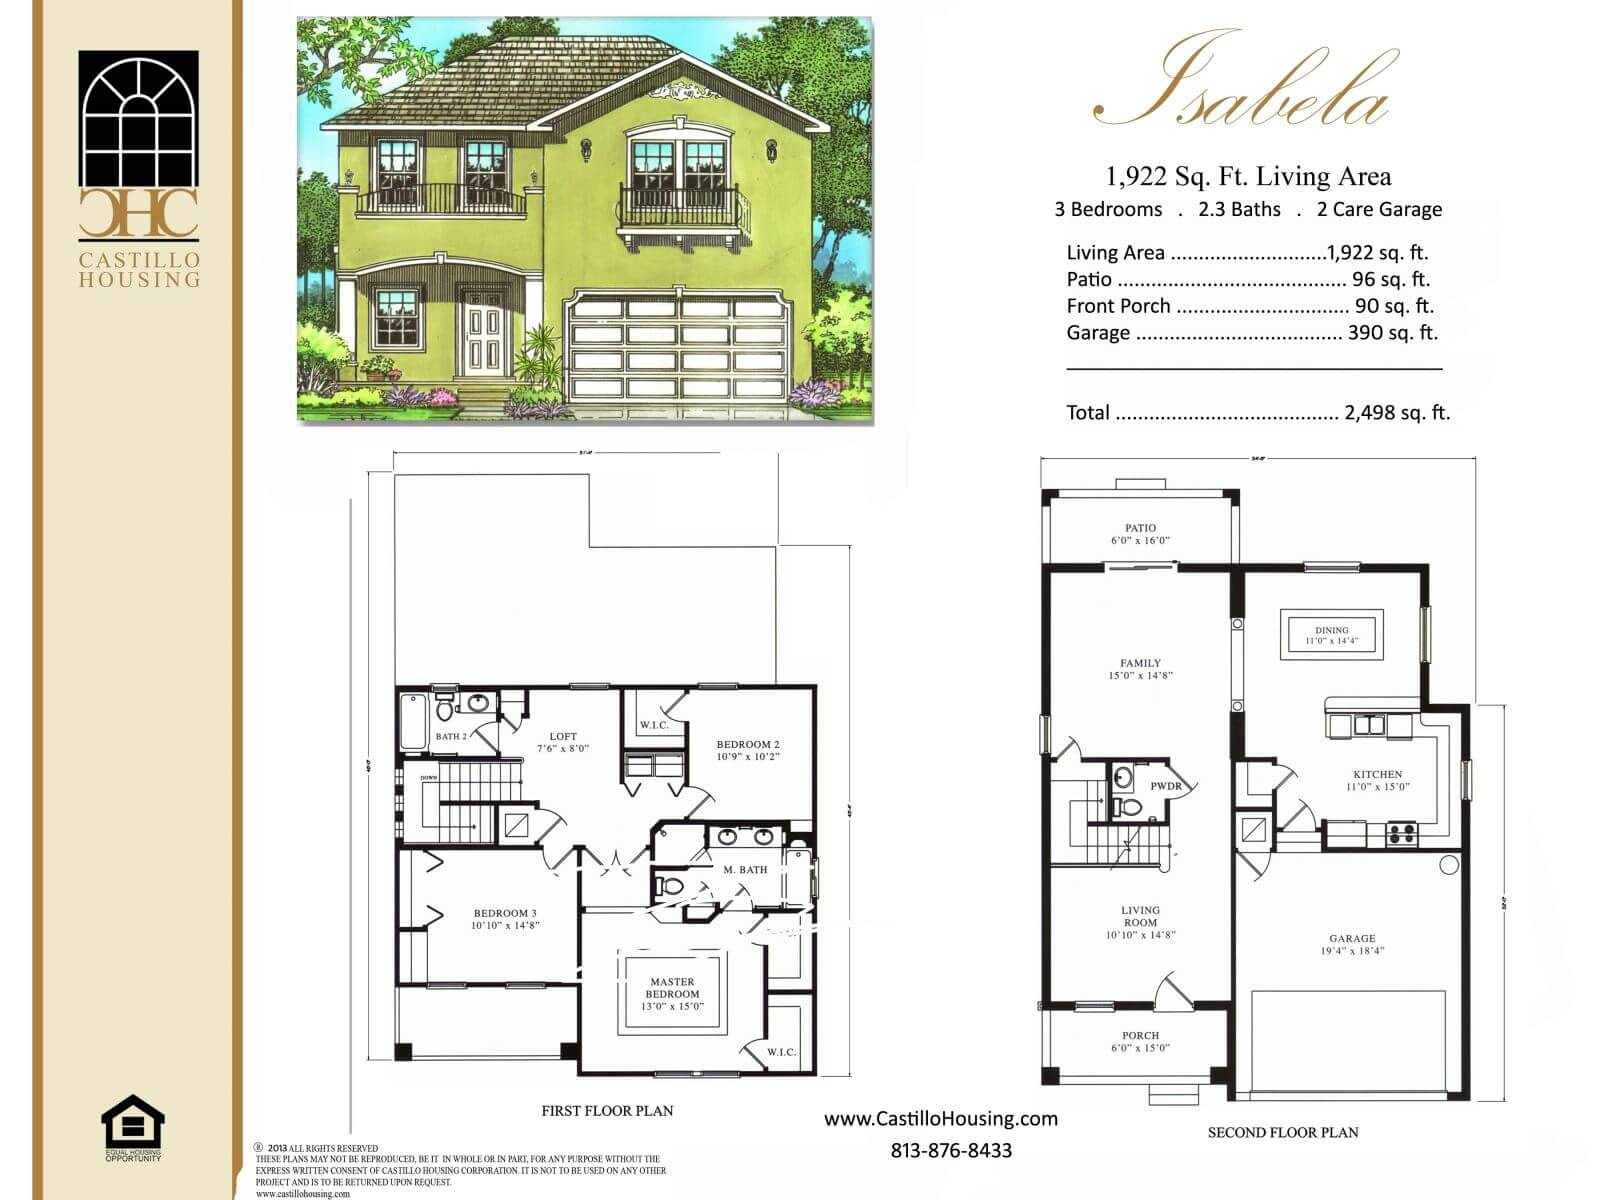 Floor Plans,1,001 SQ FT TO 2,000 SQ FT,1011